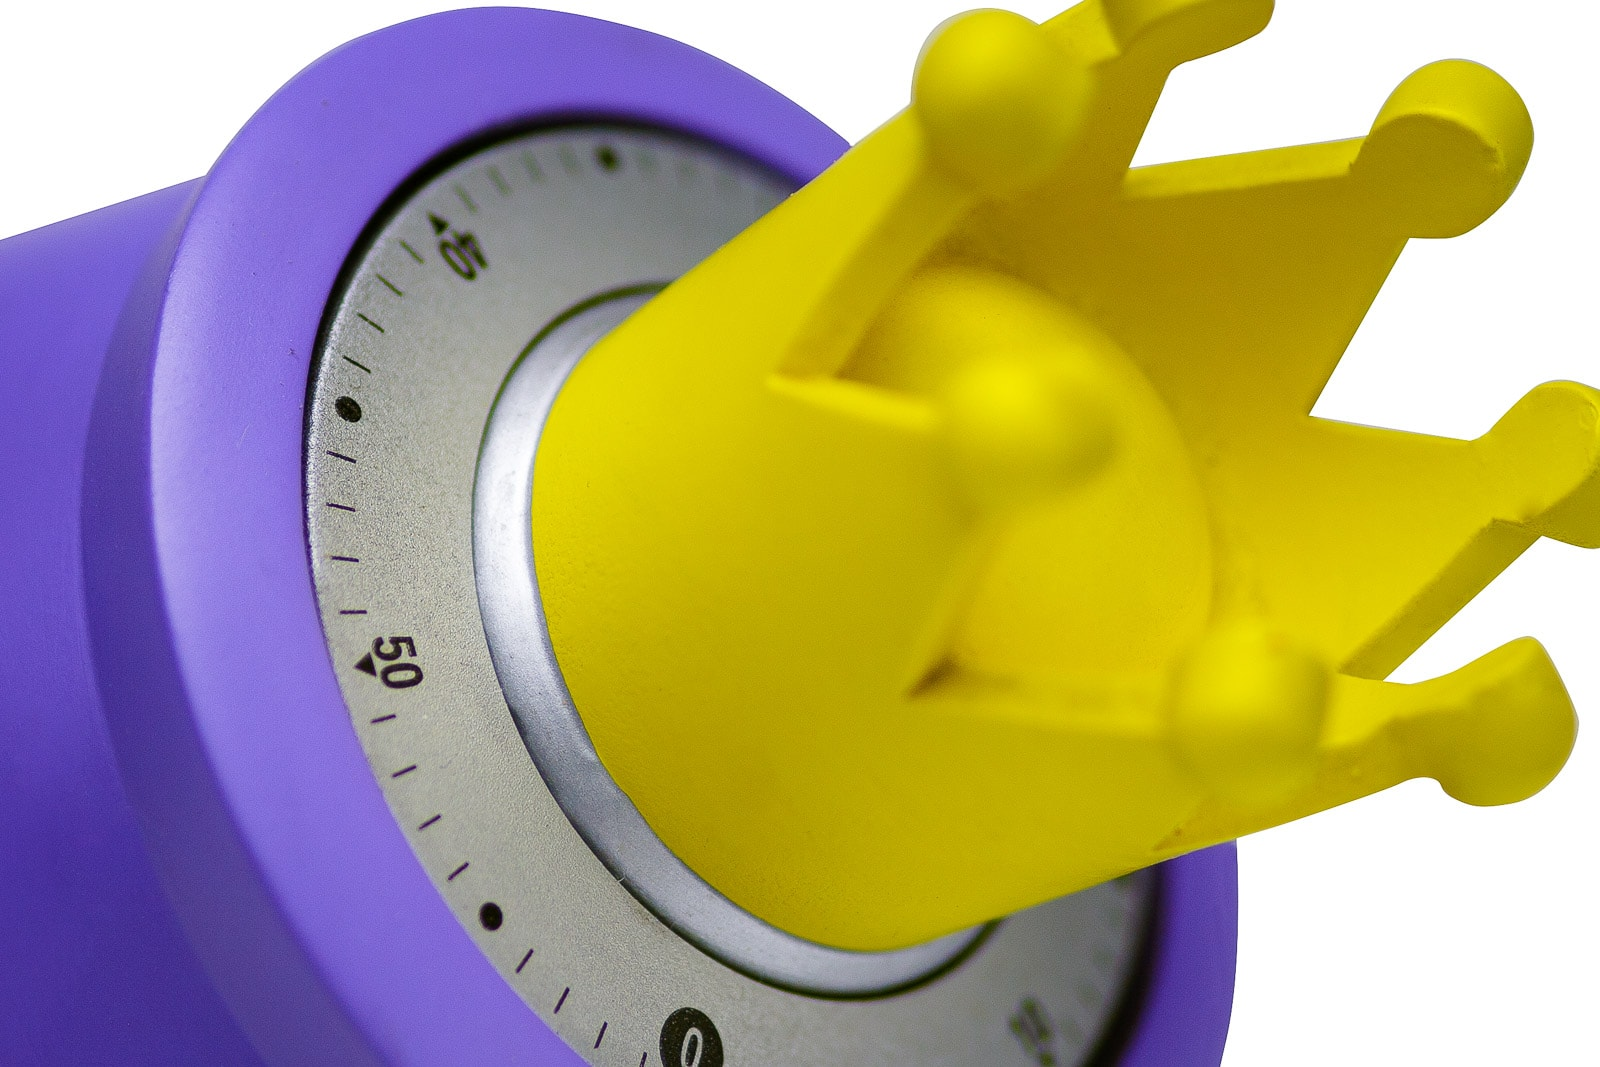 kitchen timer product close-up